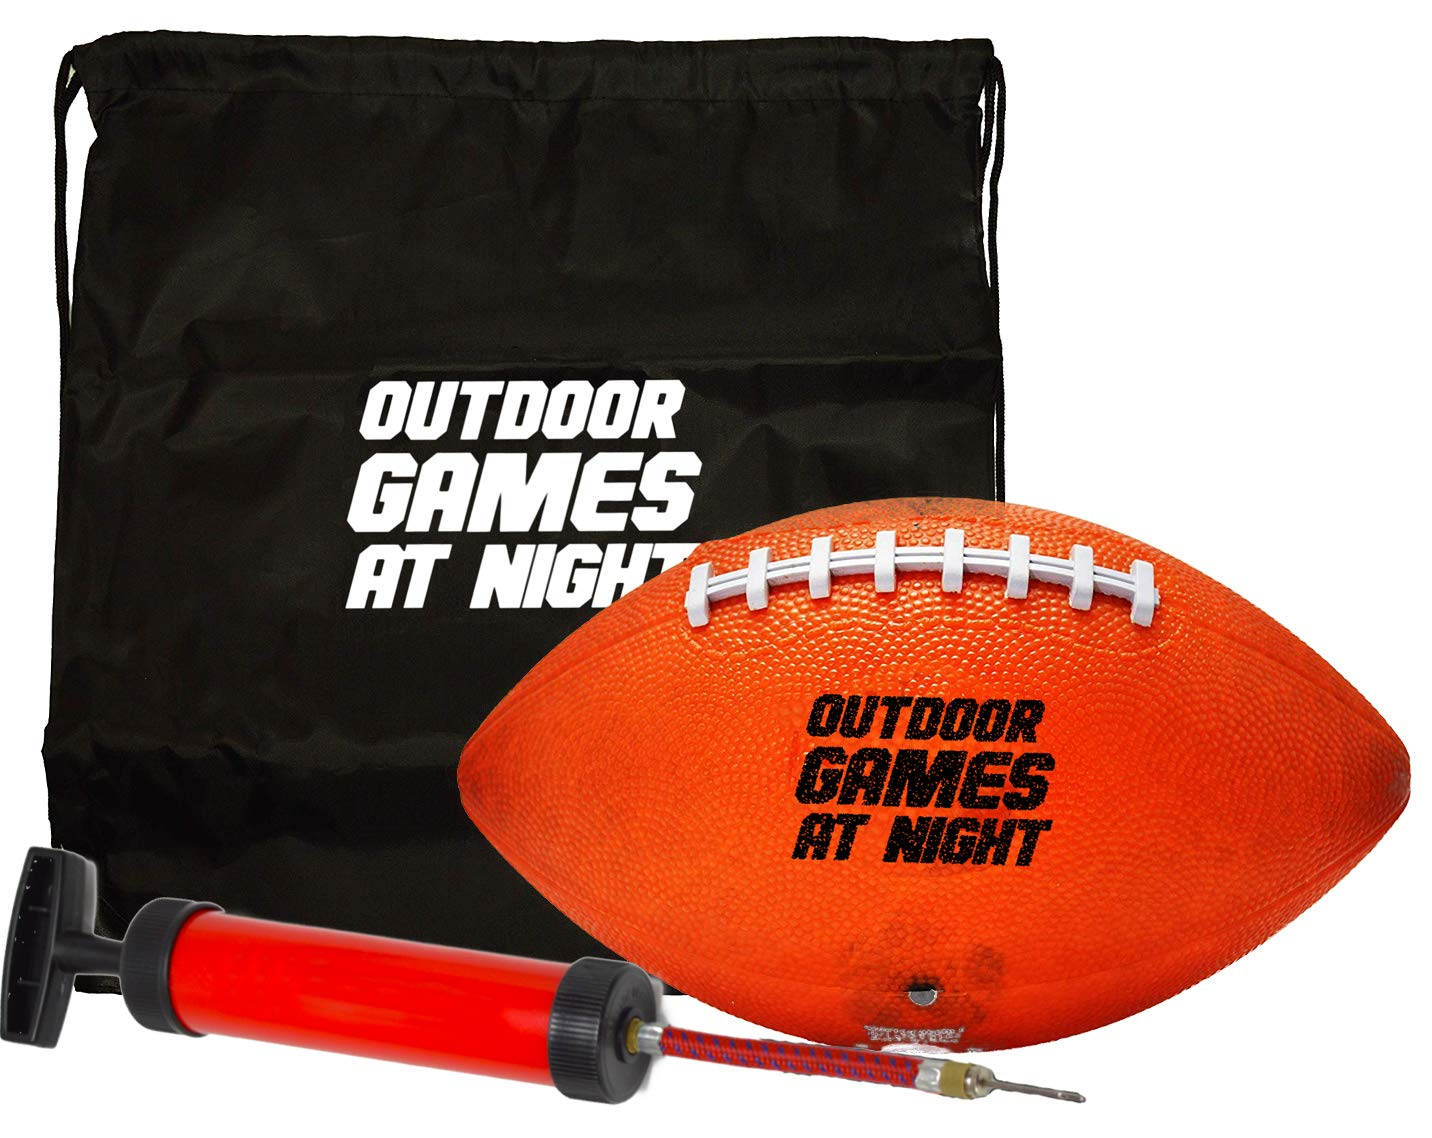 Outdoor Games LED Football with Pump and Bag - Light Up The Night with The Glow in The Dark Football (Button Activated)